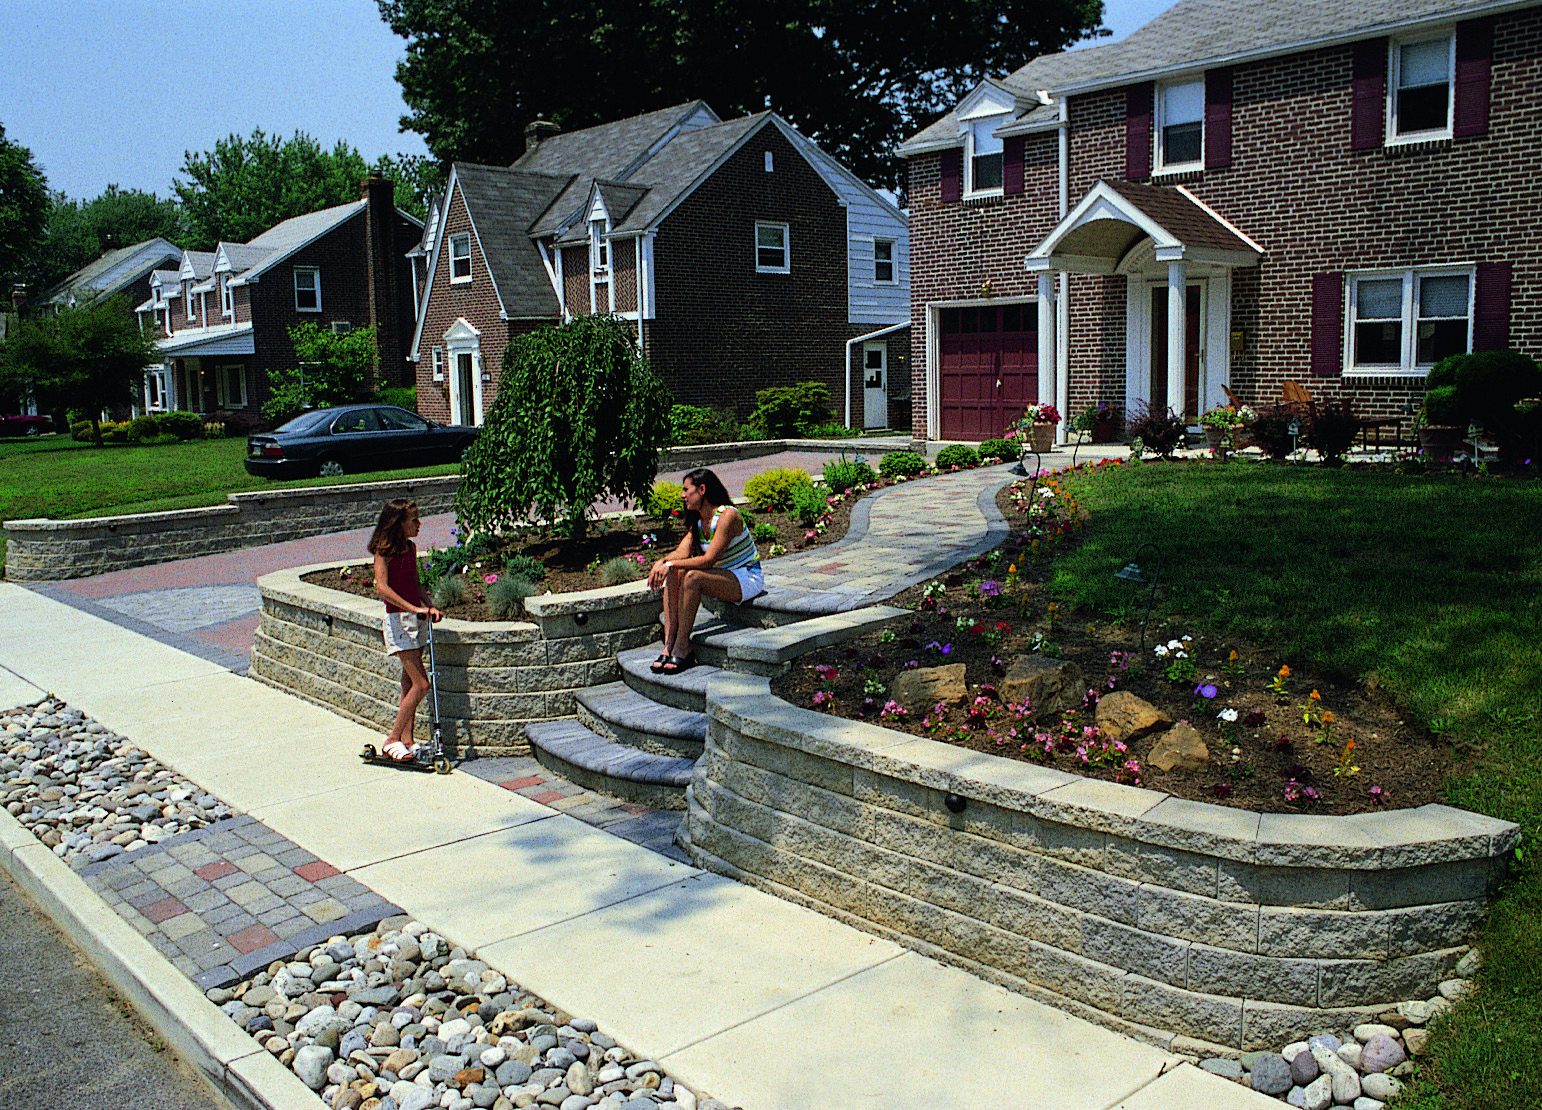 Home And Garden Design Ideau0027s | Idea | Front Yard Retaining Wall